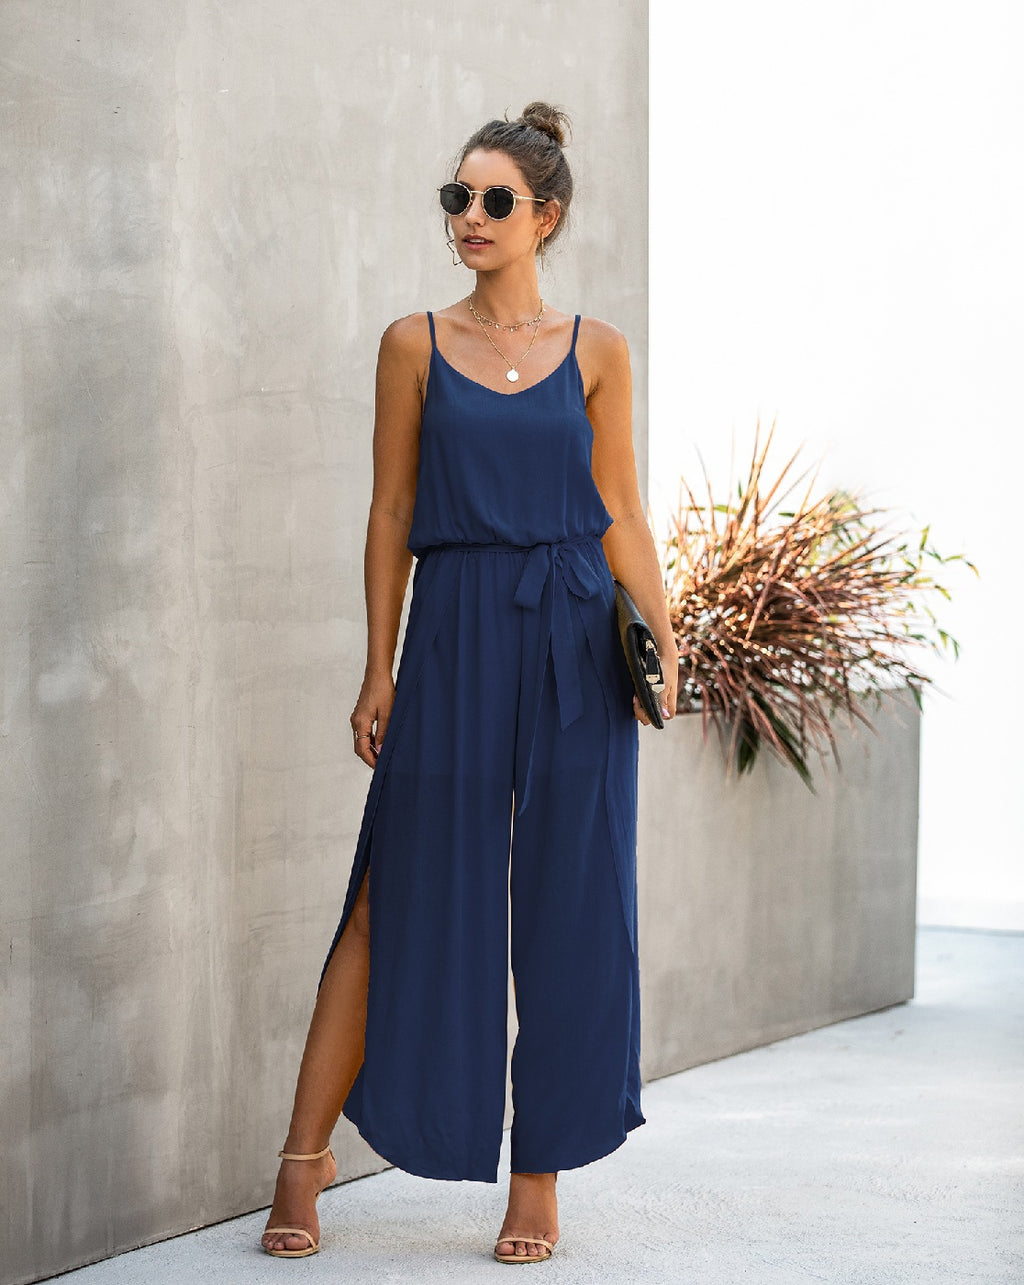 Best seller!!! Navy Spaghetti Strap Wide Leg Jumpsuit